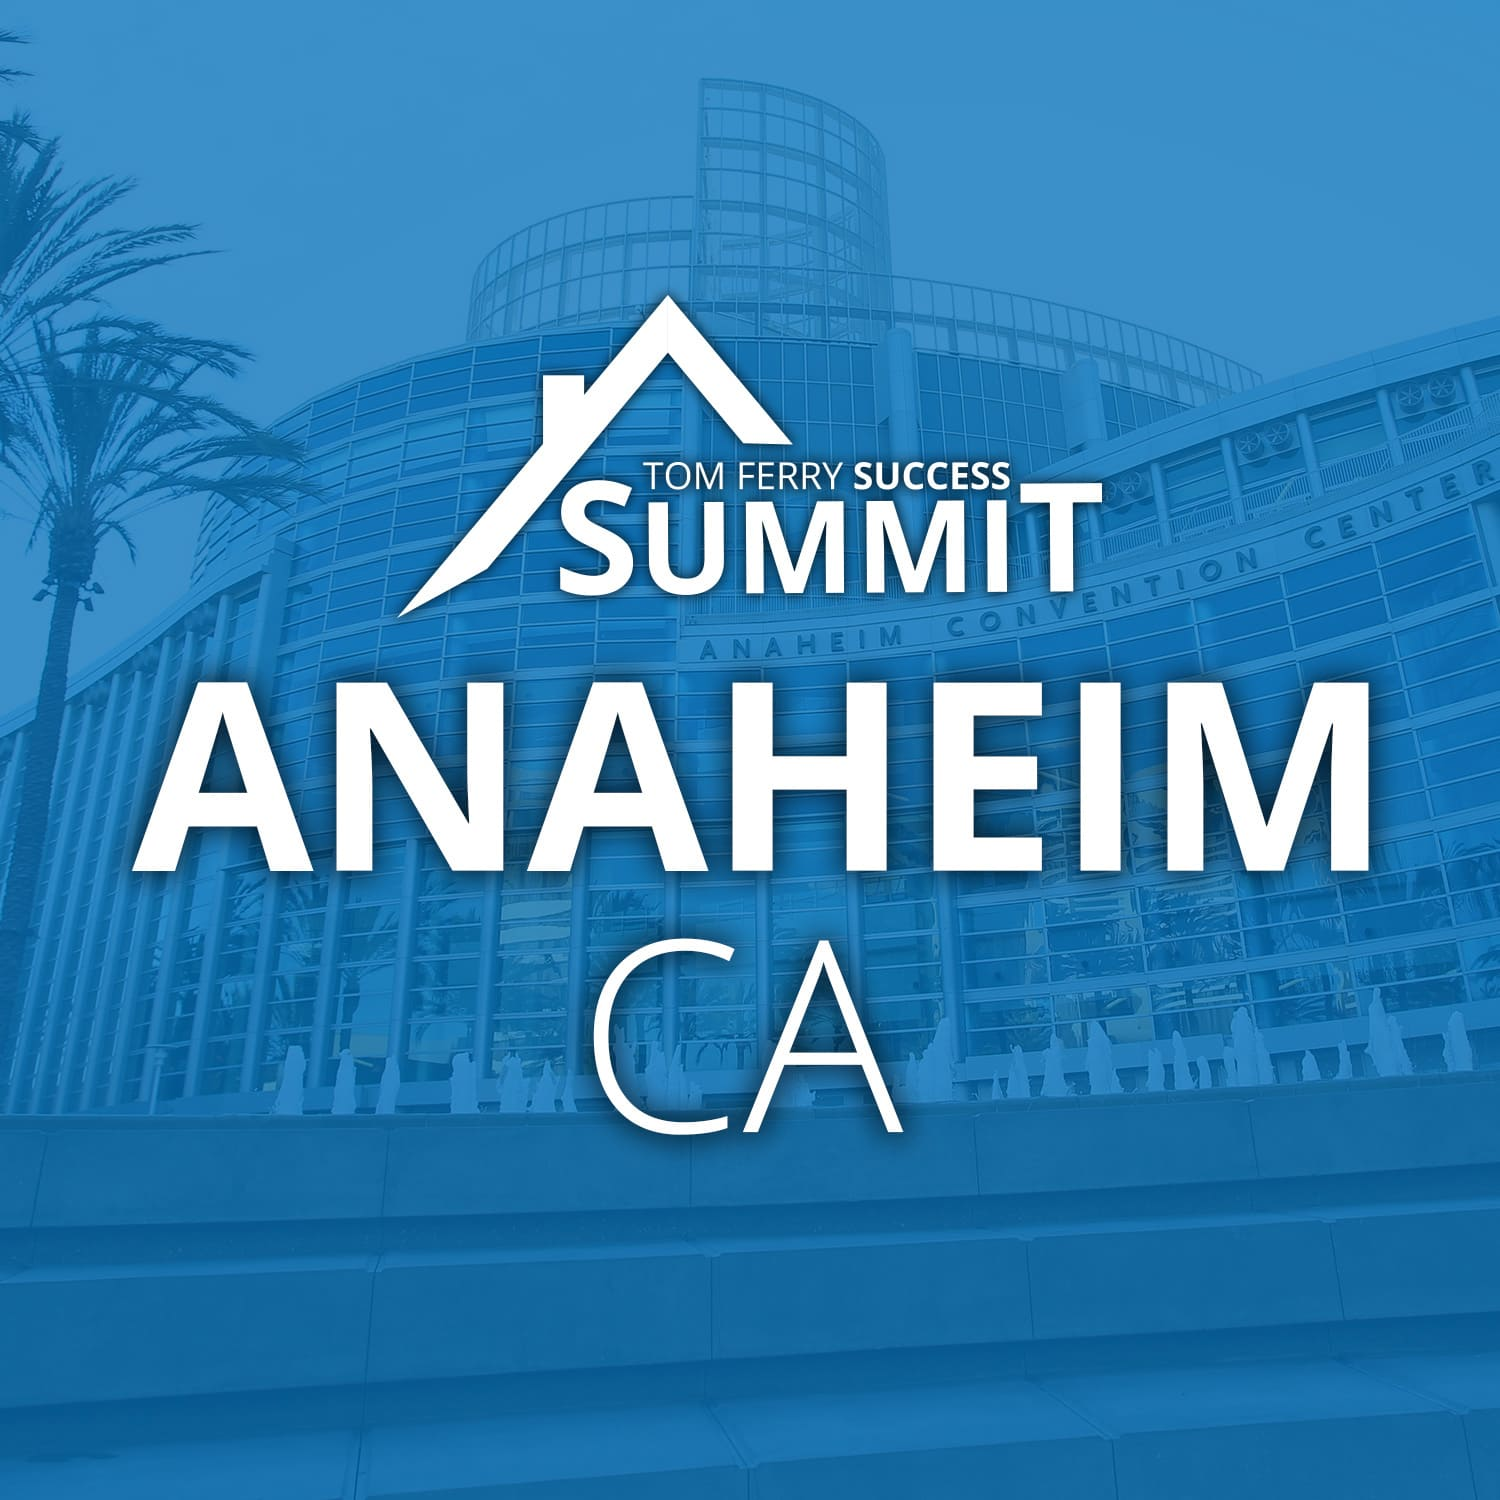 Success summit 2018 anaheim ca real estates 1 educator tom product event summit 2018 min malvernweather Images